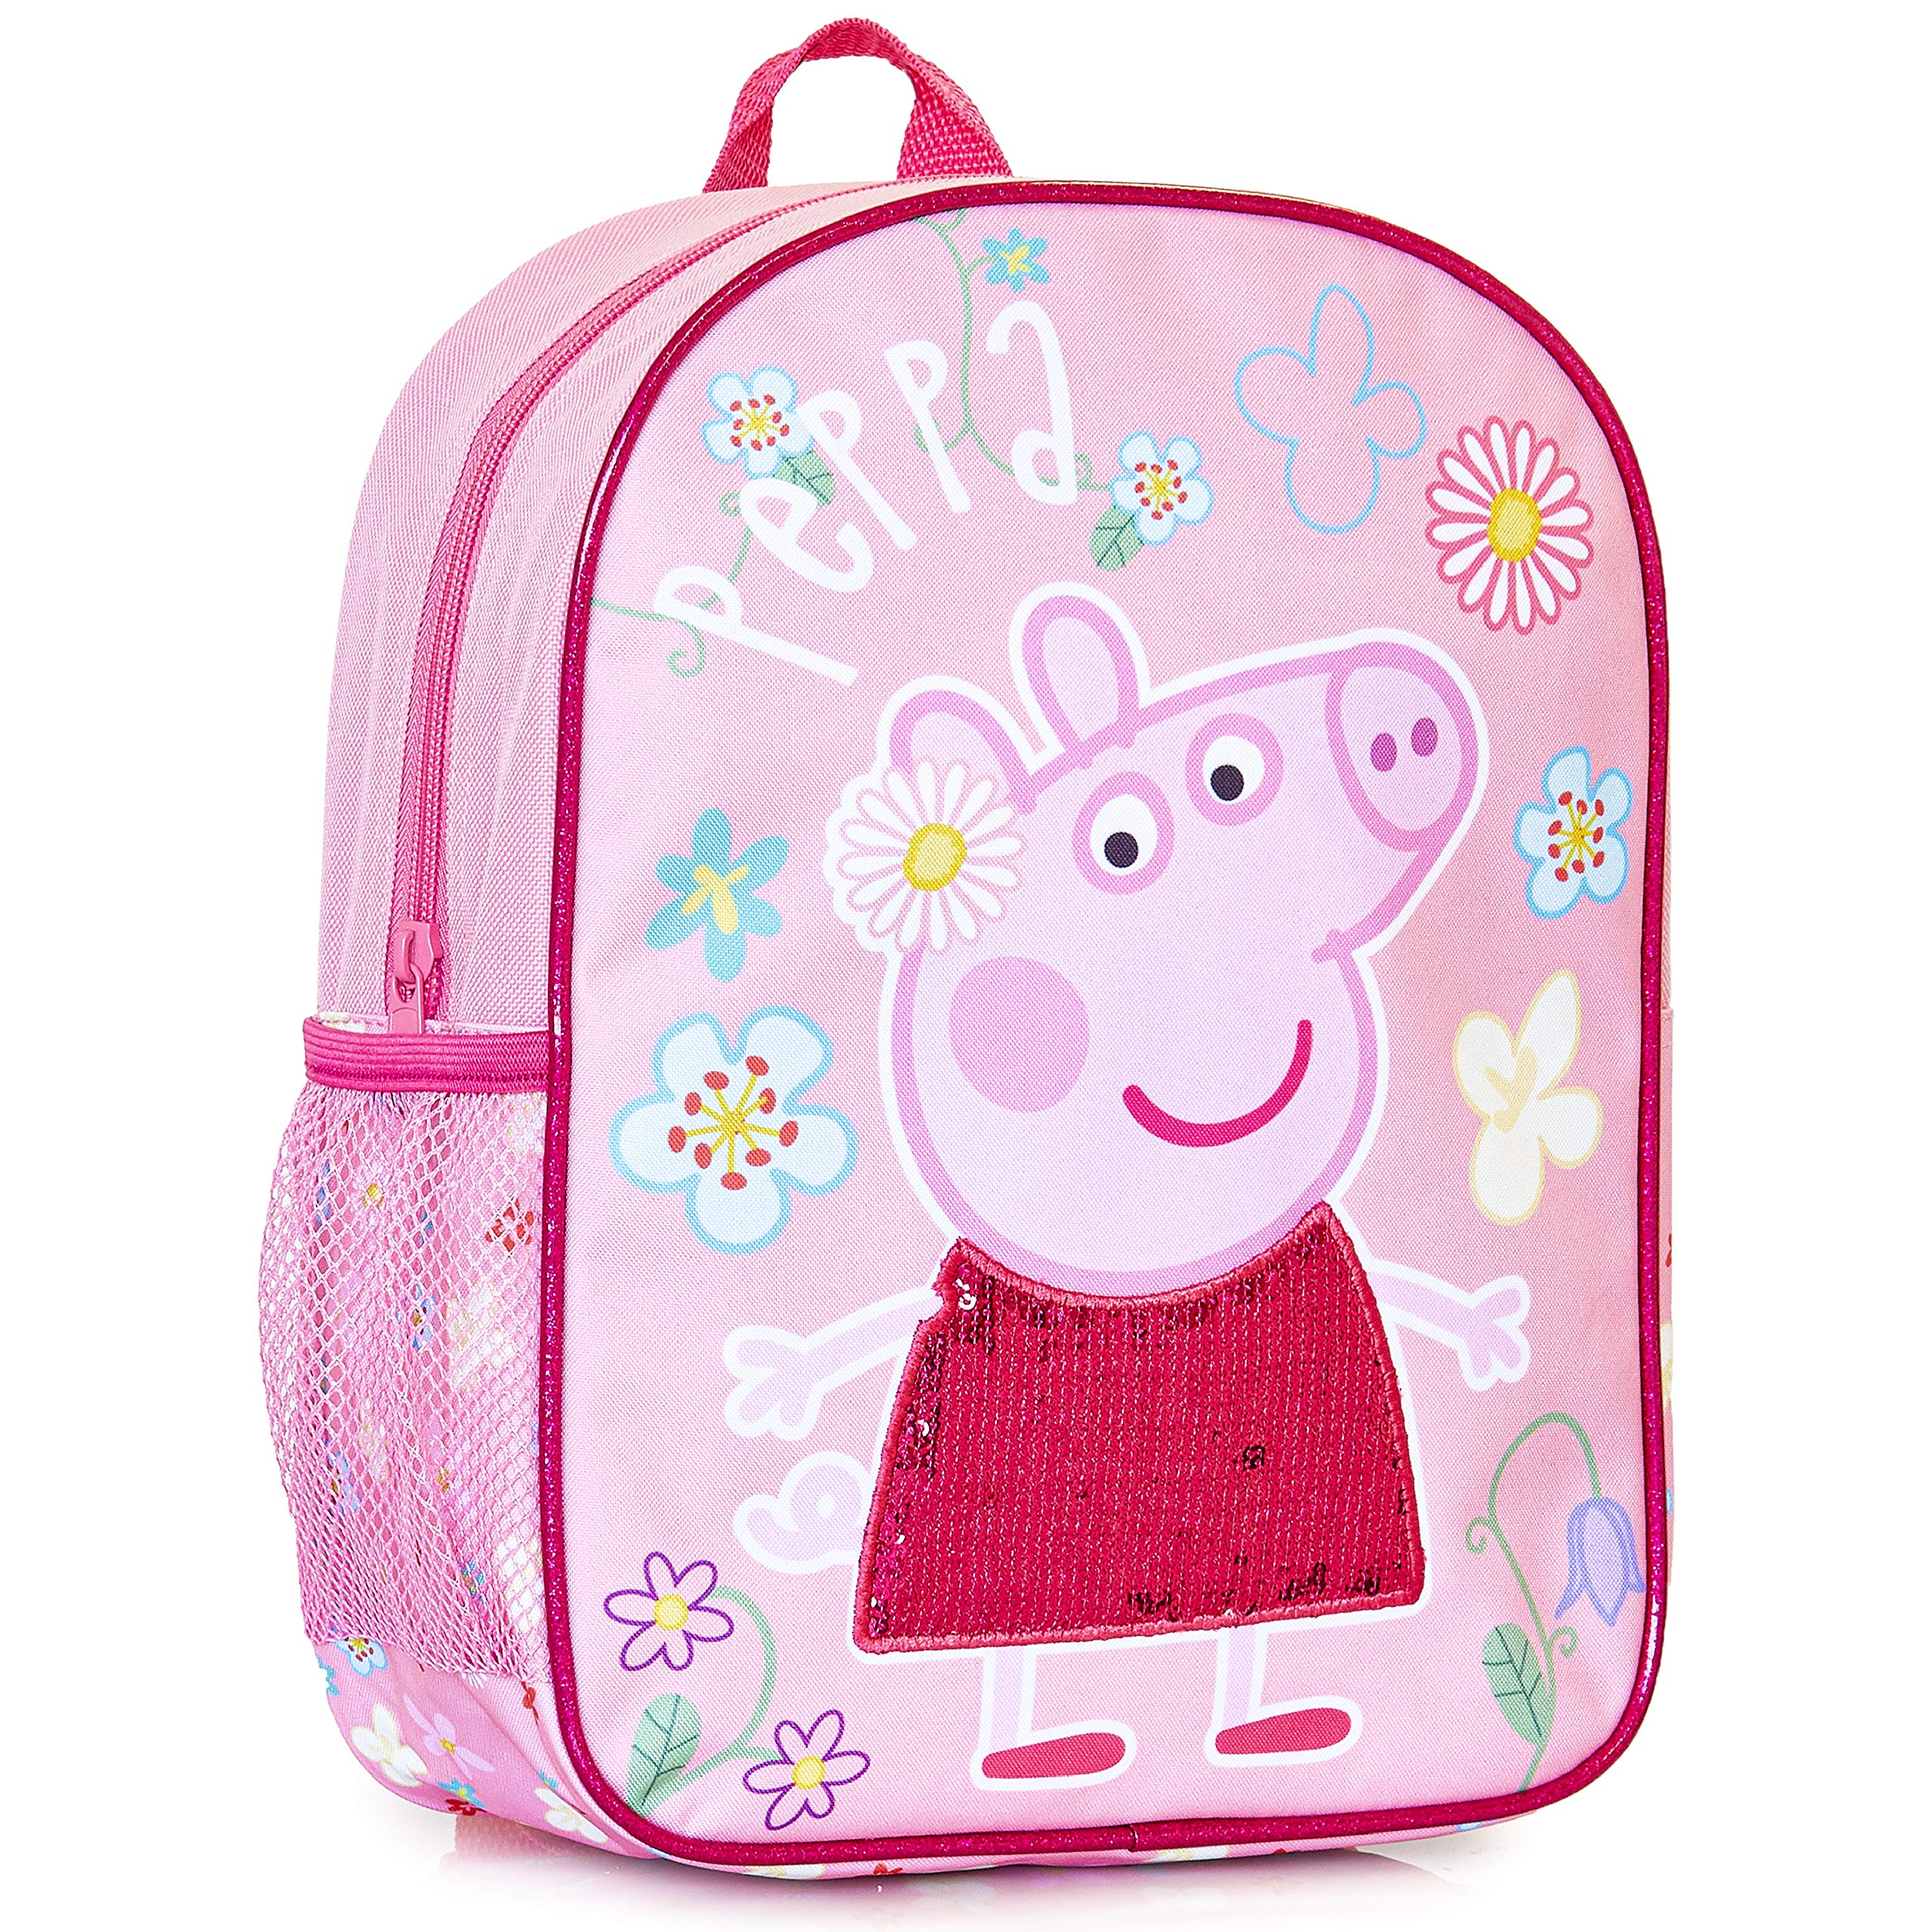 Sequin Kids Backpack | Girls Pink Canvas Rucksack with Pink Sequin Detail On The Dress, Perfect Children School Bag, Nursery Or Preschool Bag, Kids Toddlers Holiday Travel Bag